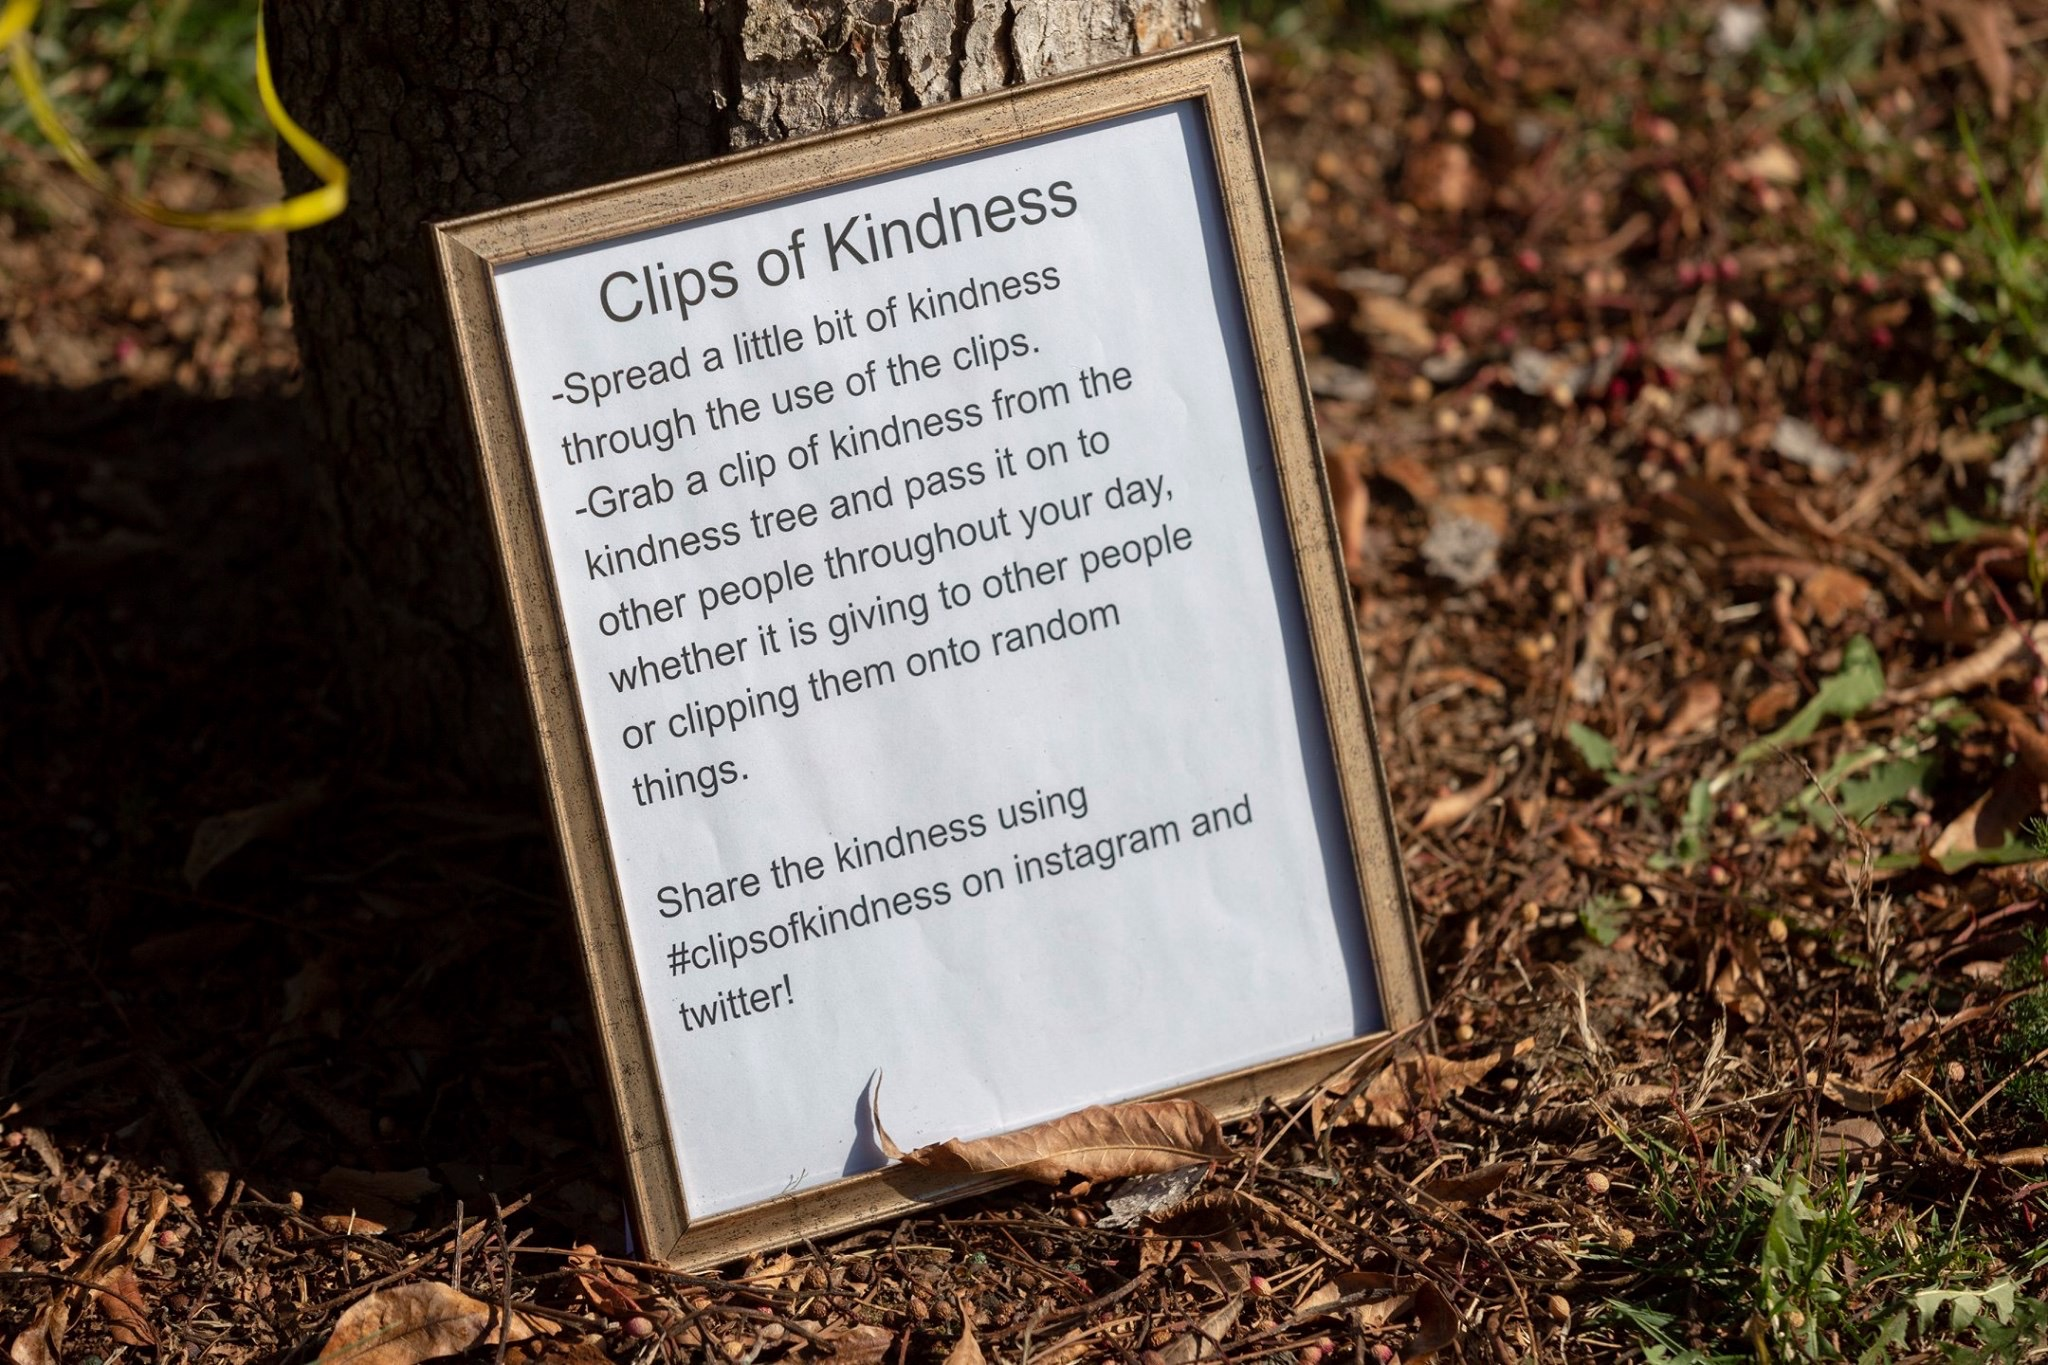 Clips of Kindness 2